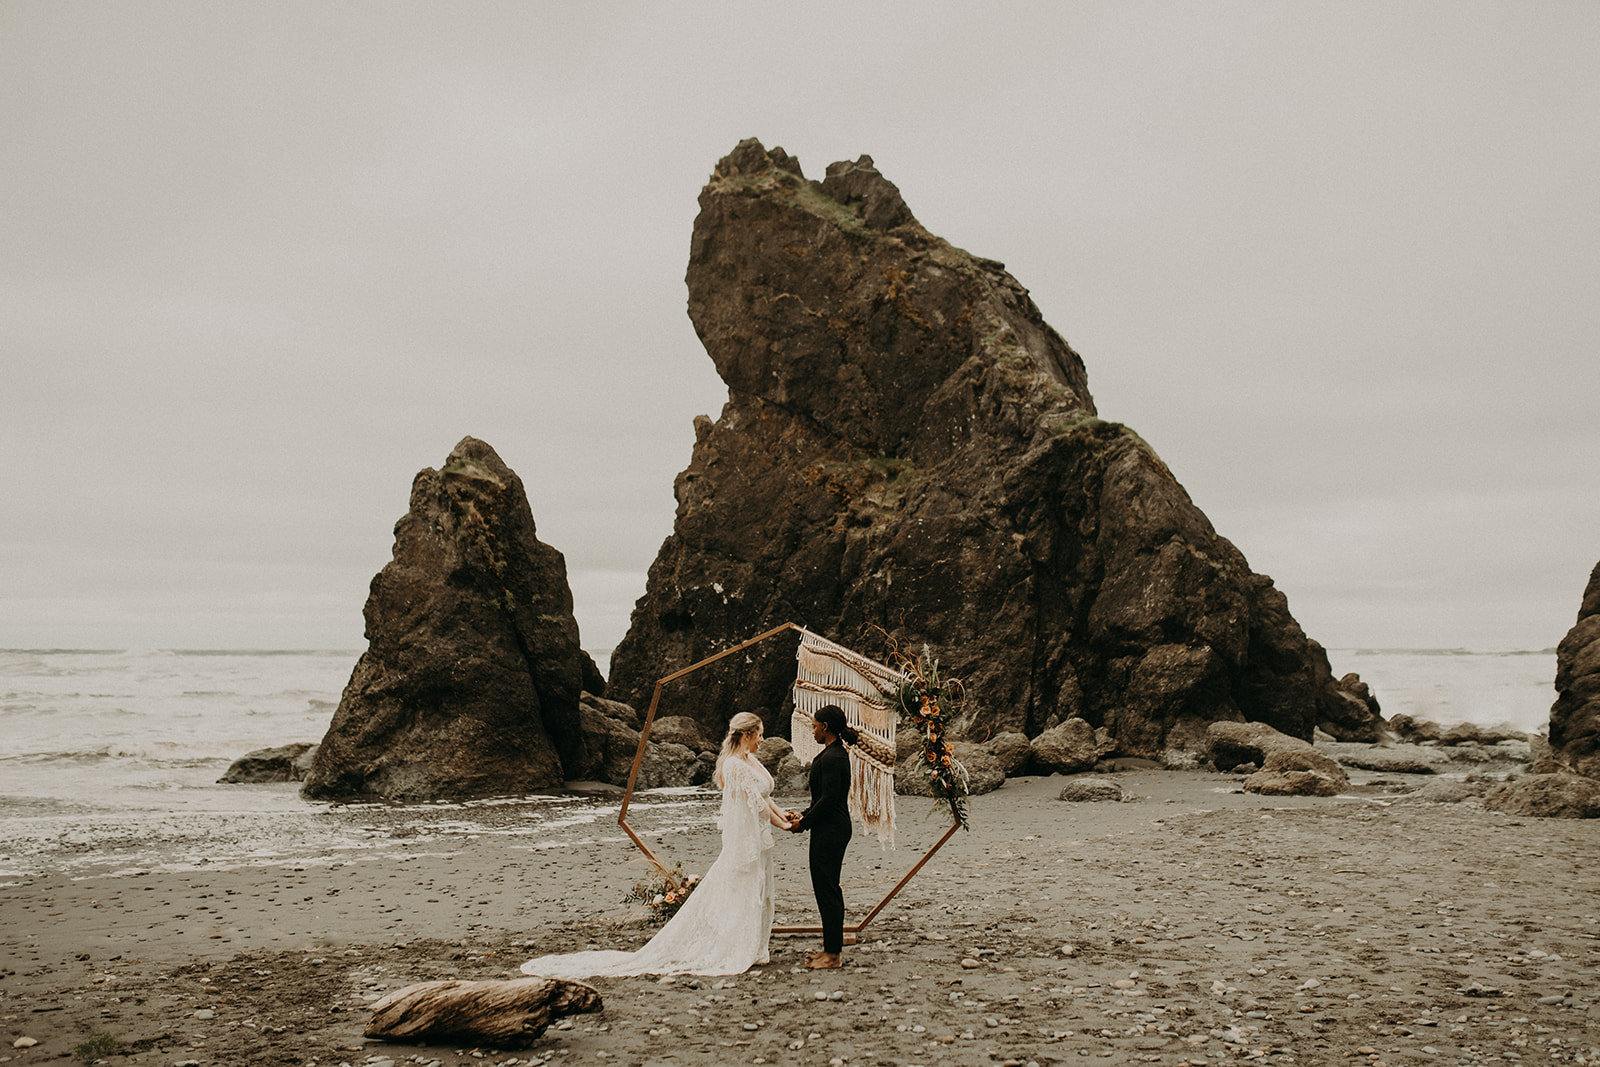 Ruby_Beach_Styled_Elopement_-_Run_Away_with_Me_Elopement_Collective_-_Kamra_Fuller_Photography_-_Ceremony-33